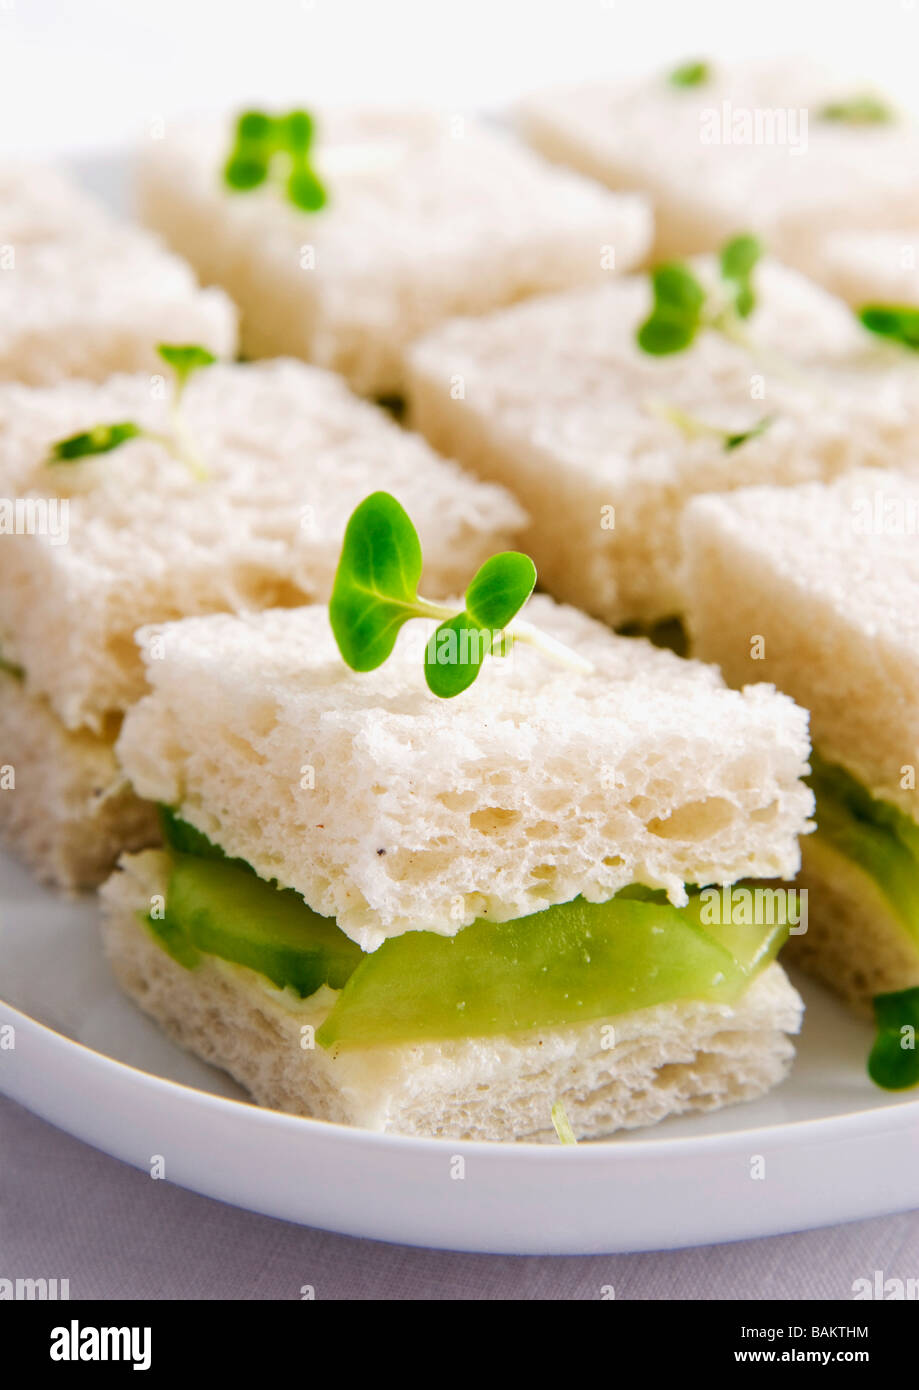 cucumber sandwiches - Stock Image